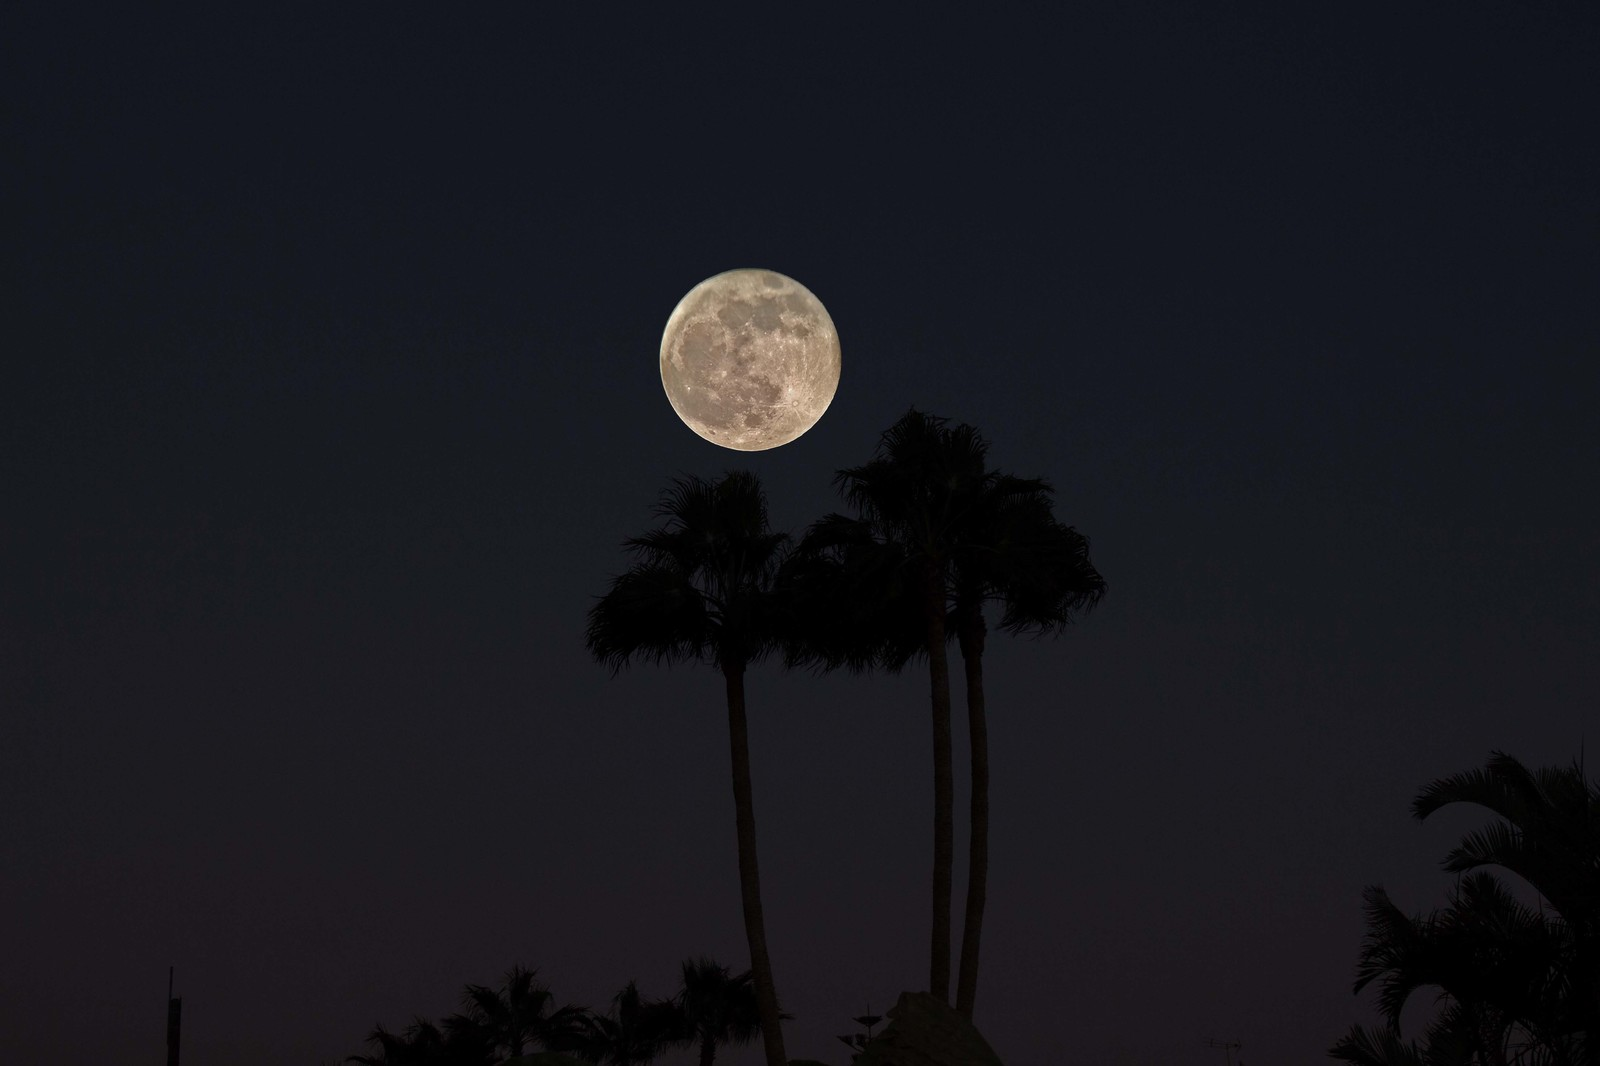 Moon over Palm trees